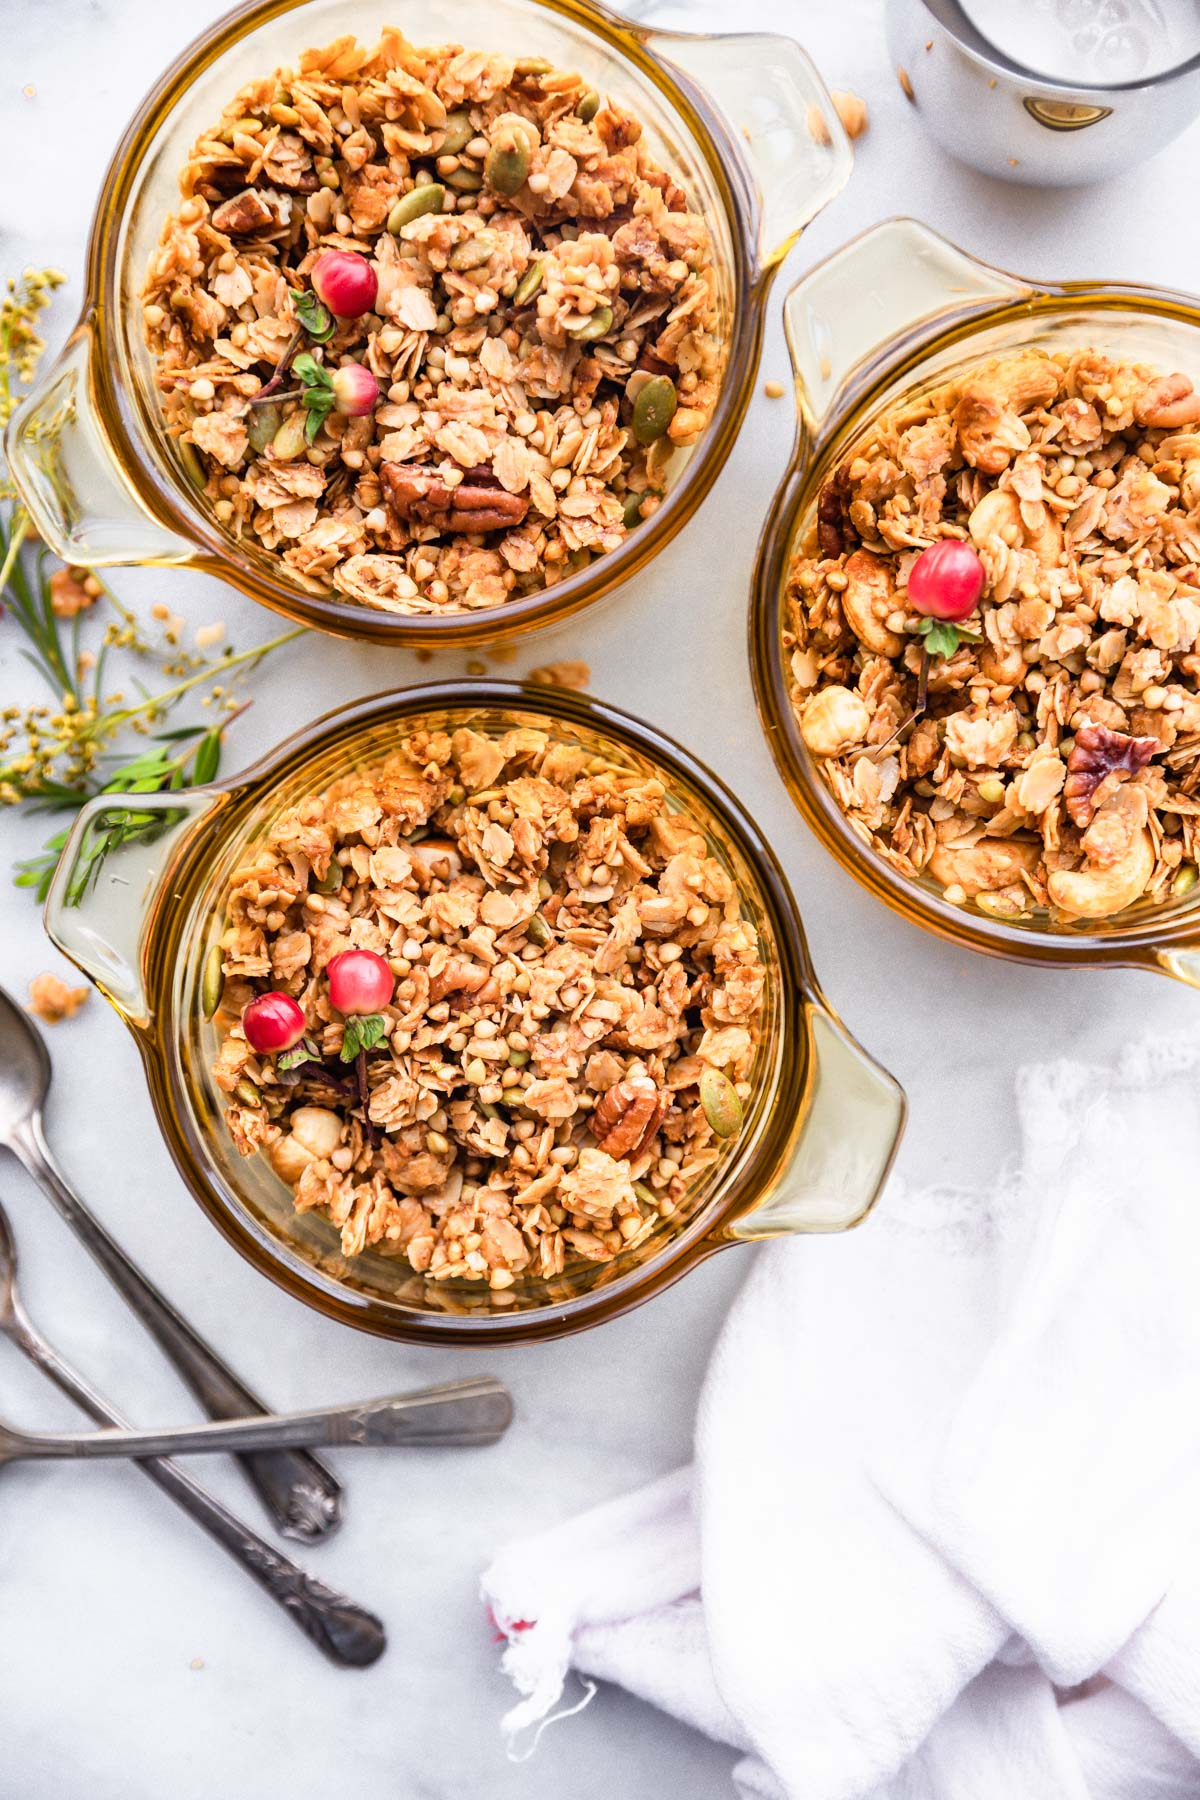 This homemade granola has buckwheat groats and is lightly sweetened with maple syrup. It's a delicious, wholesome anytime snack. Plus, it's perfect for holiday food gifts! Pair it with whatever you'd like-  yogurt, milk, dried fruit, chocolate, etc. Or, eat it by itself! This granola recipe is vegan and refined sugar free. #granola #glutenfree #vegan #homemade